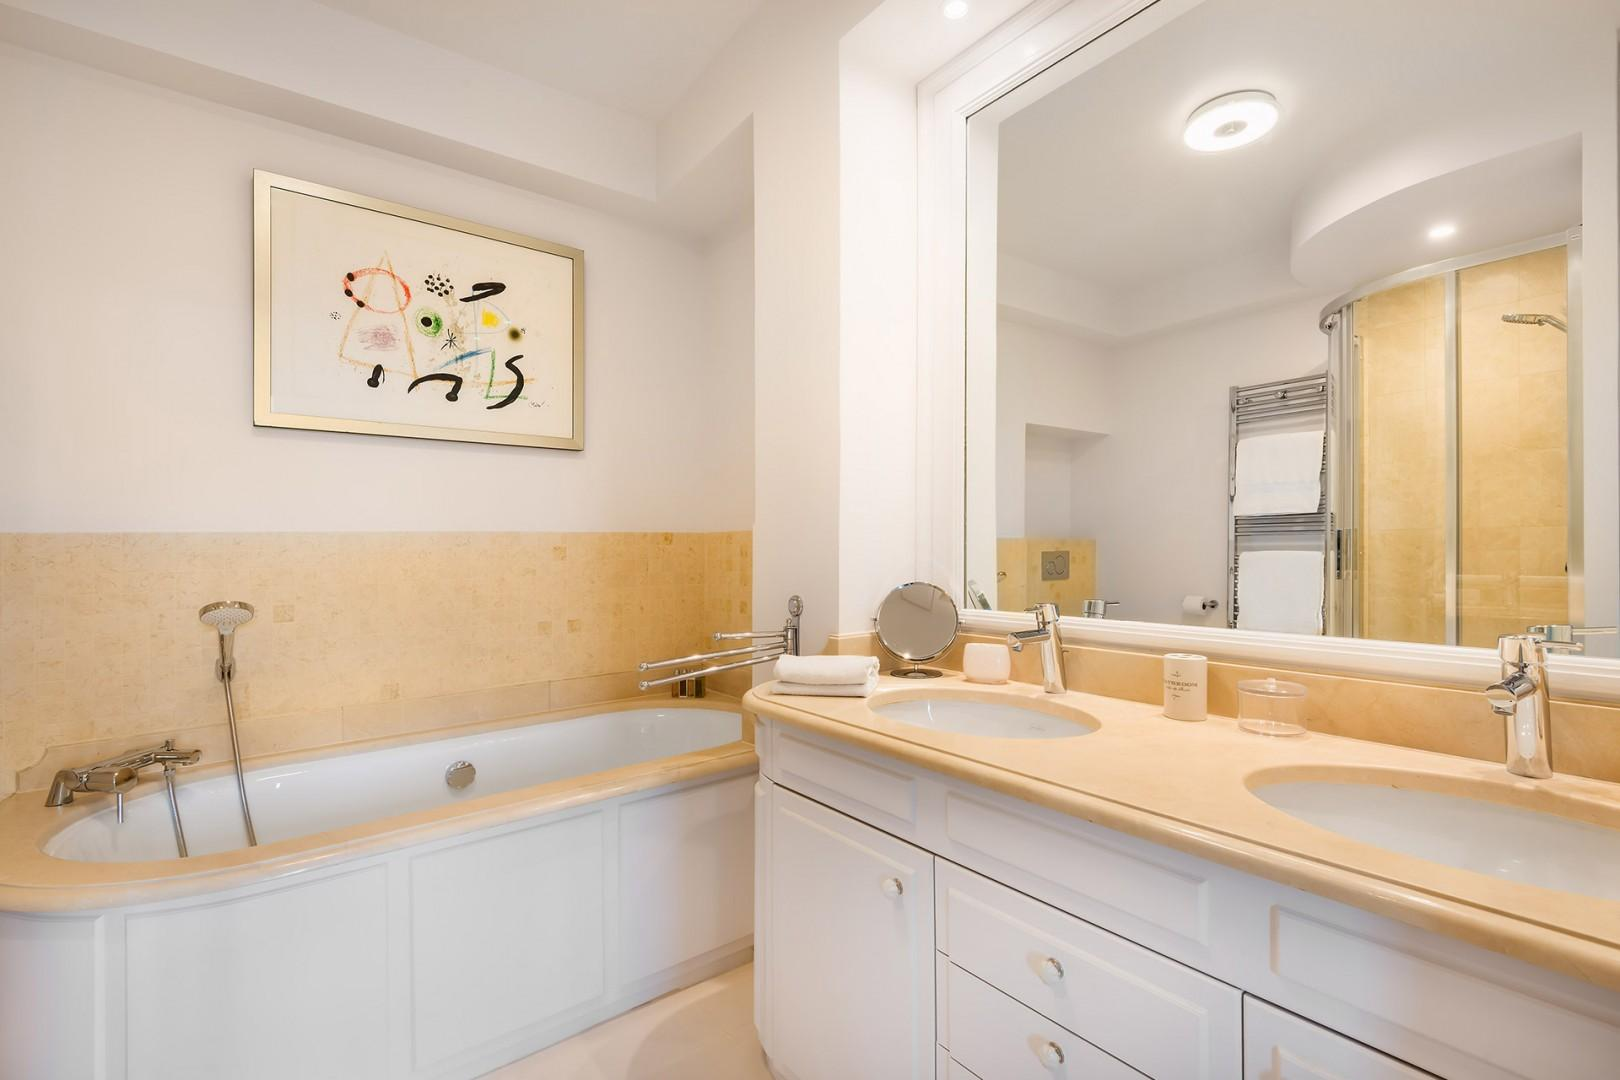 The luxurious bathroom 1 with a bathtub is fit for a royal!